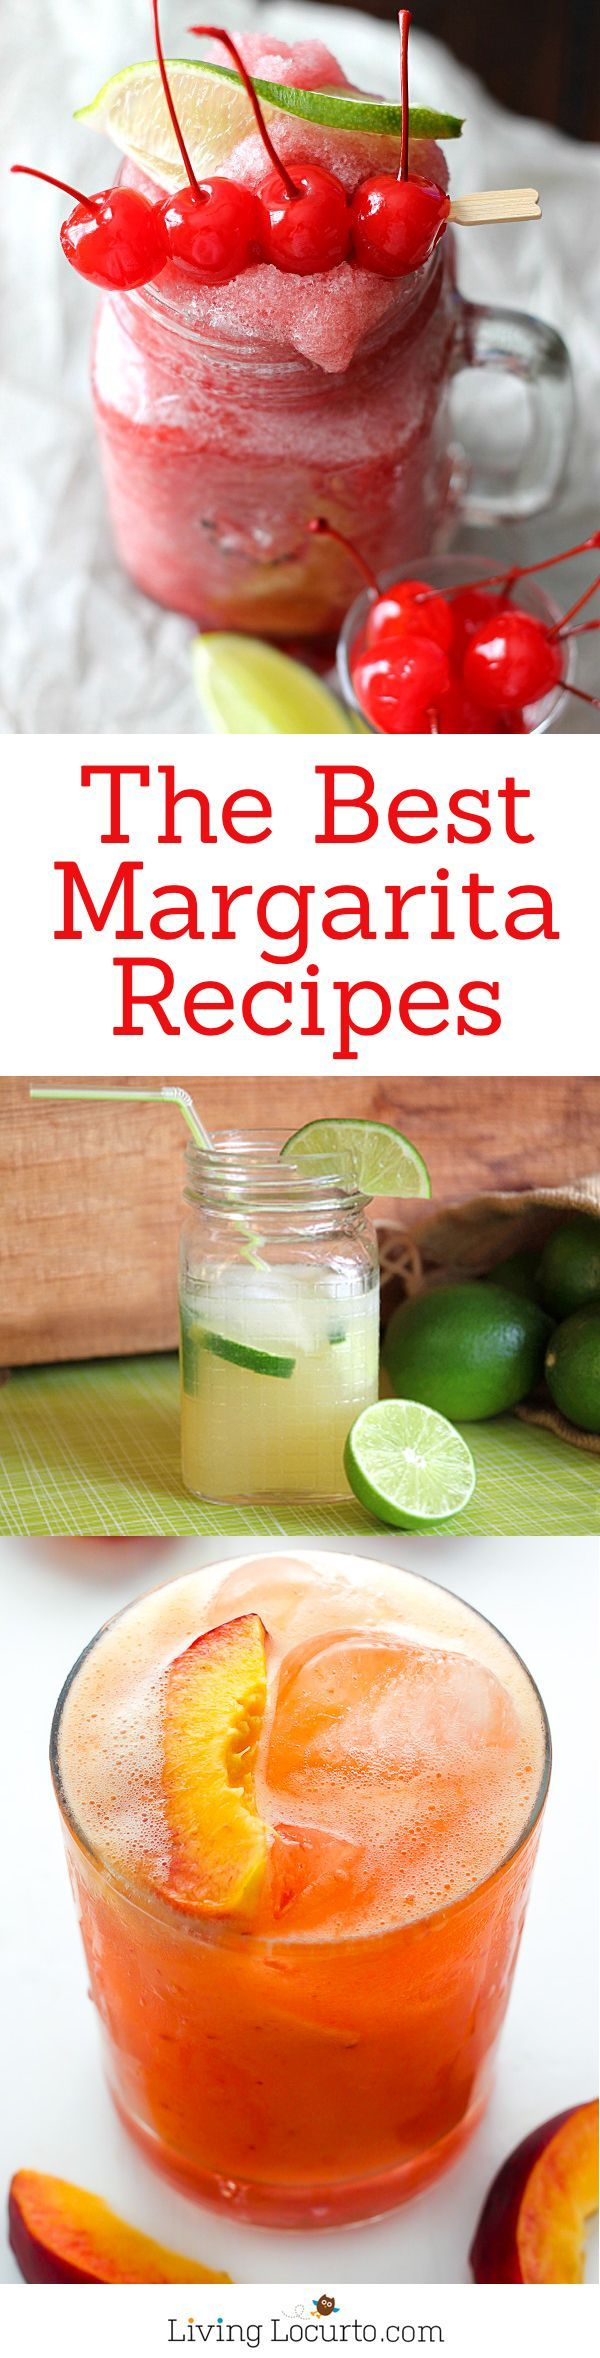 The Best Margarita Recipes ever! From Strawberry and Blackberry to Pineapple and Coconut, you'll find a frozen cocktail perfect for party drink or a hot summer day!